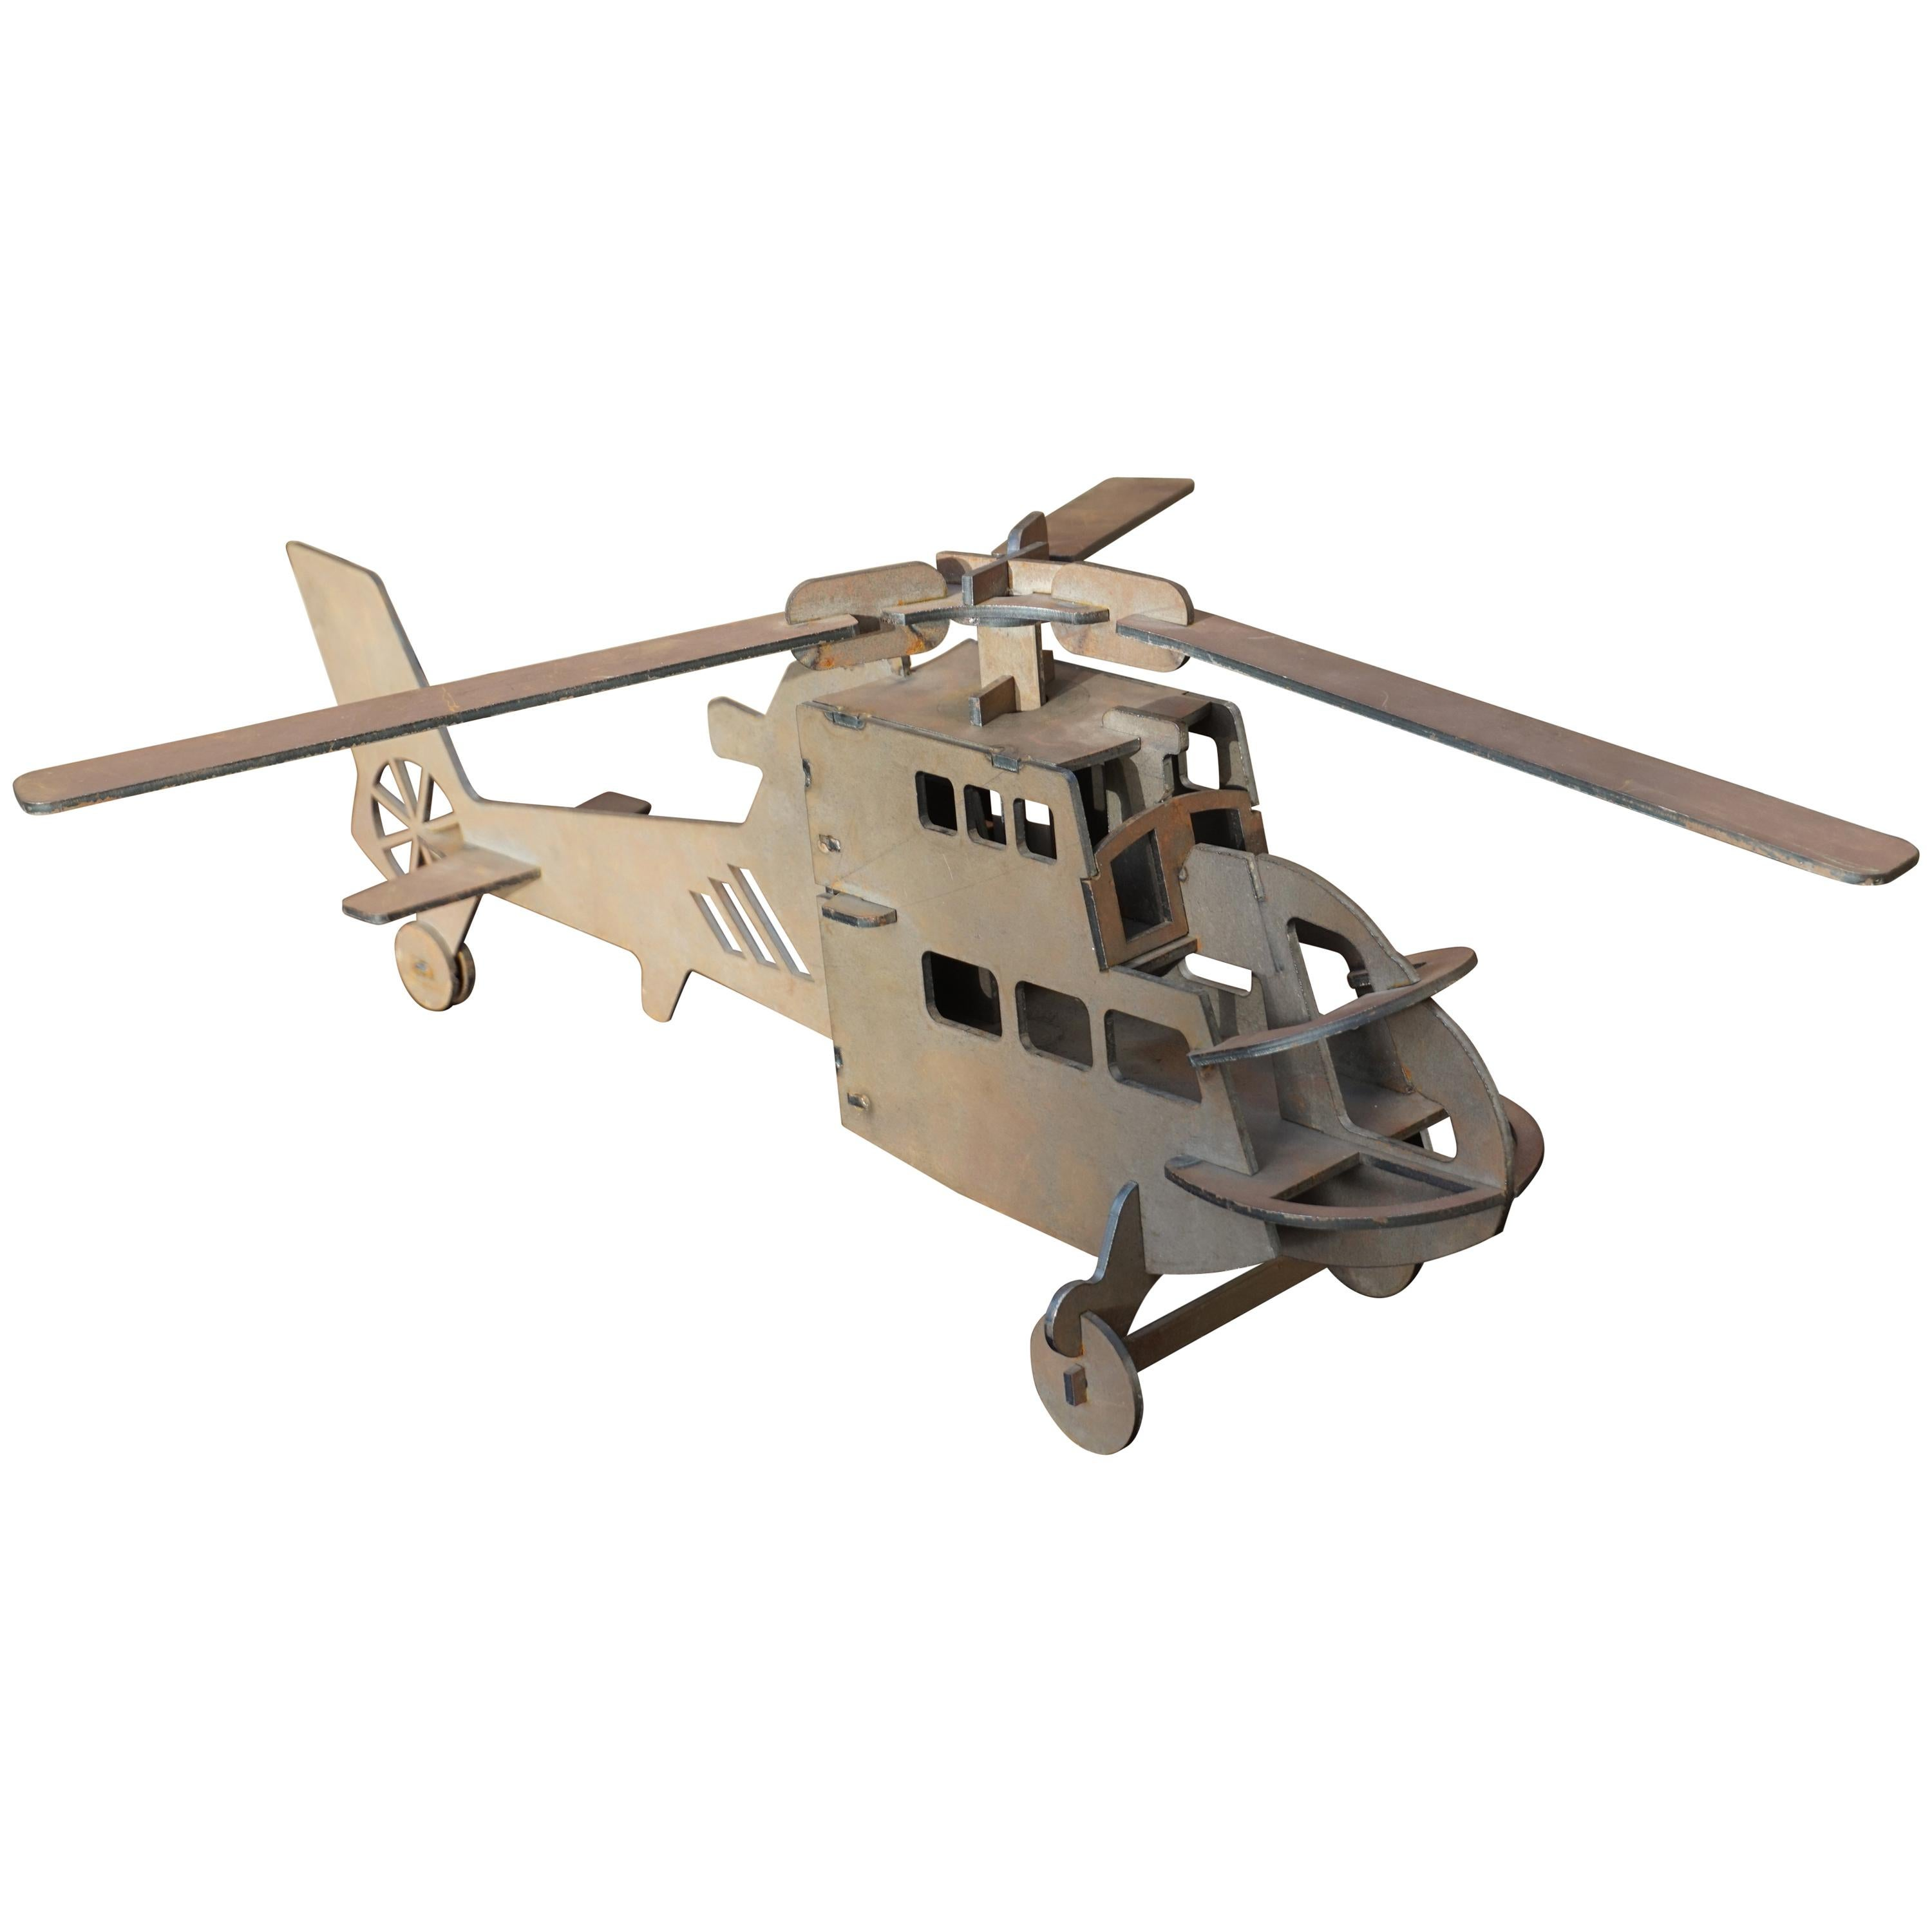 Handcrafted Thick Sheet Metal Folk Art Chopper / Army Helicopter Model Pendant